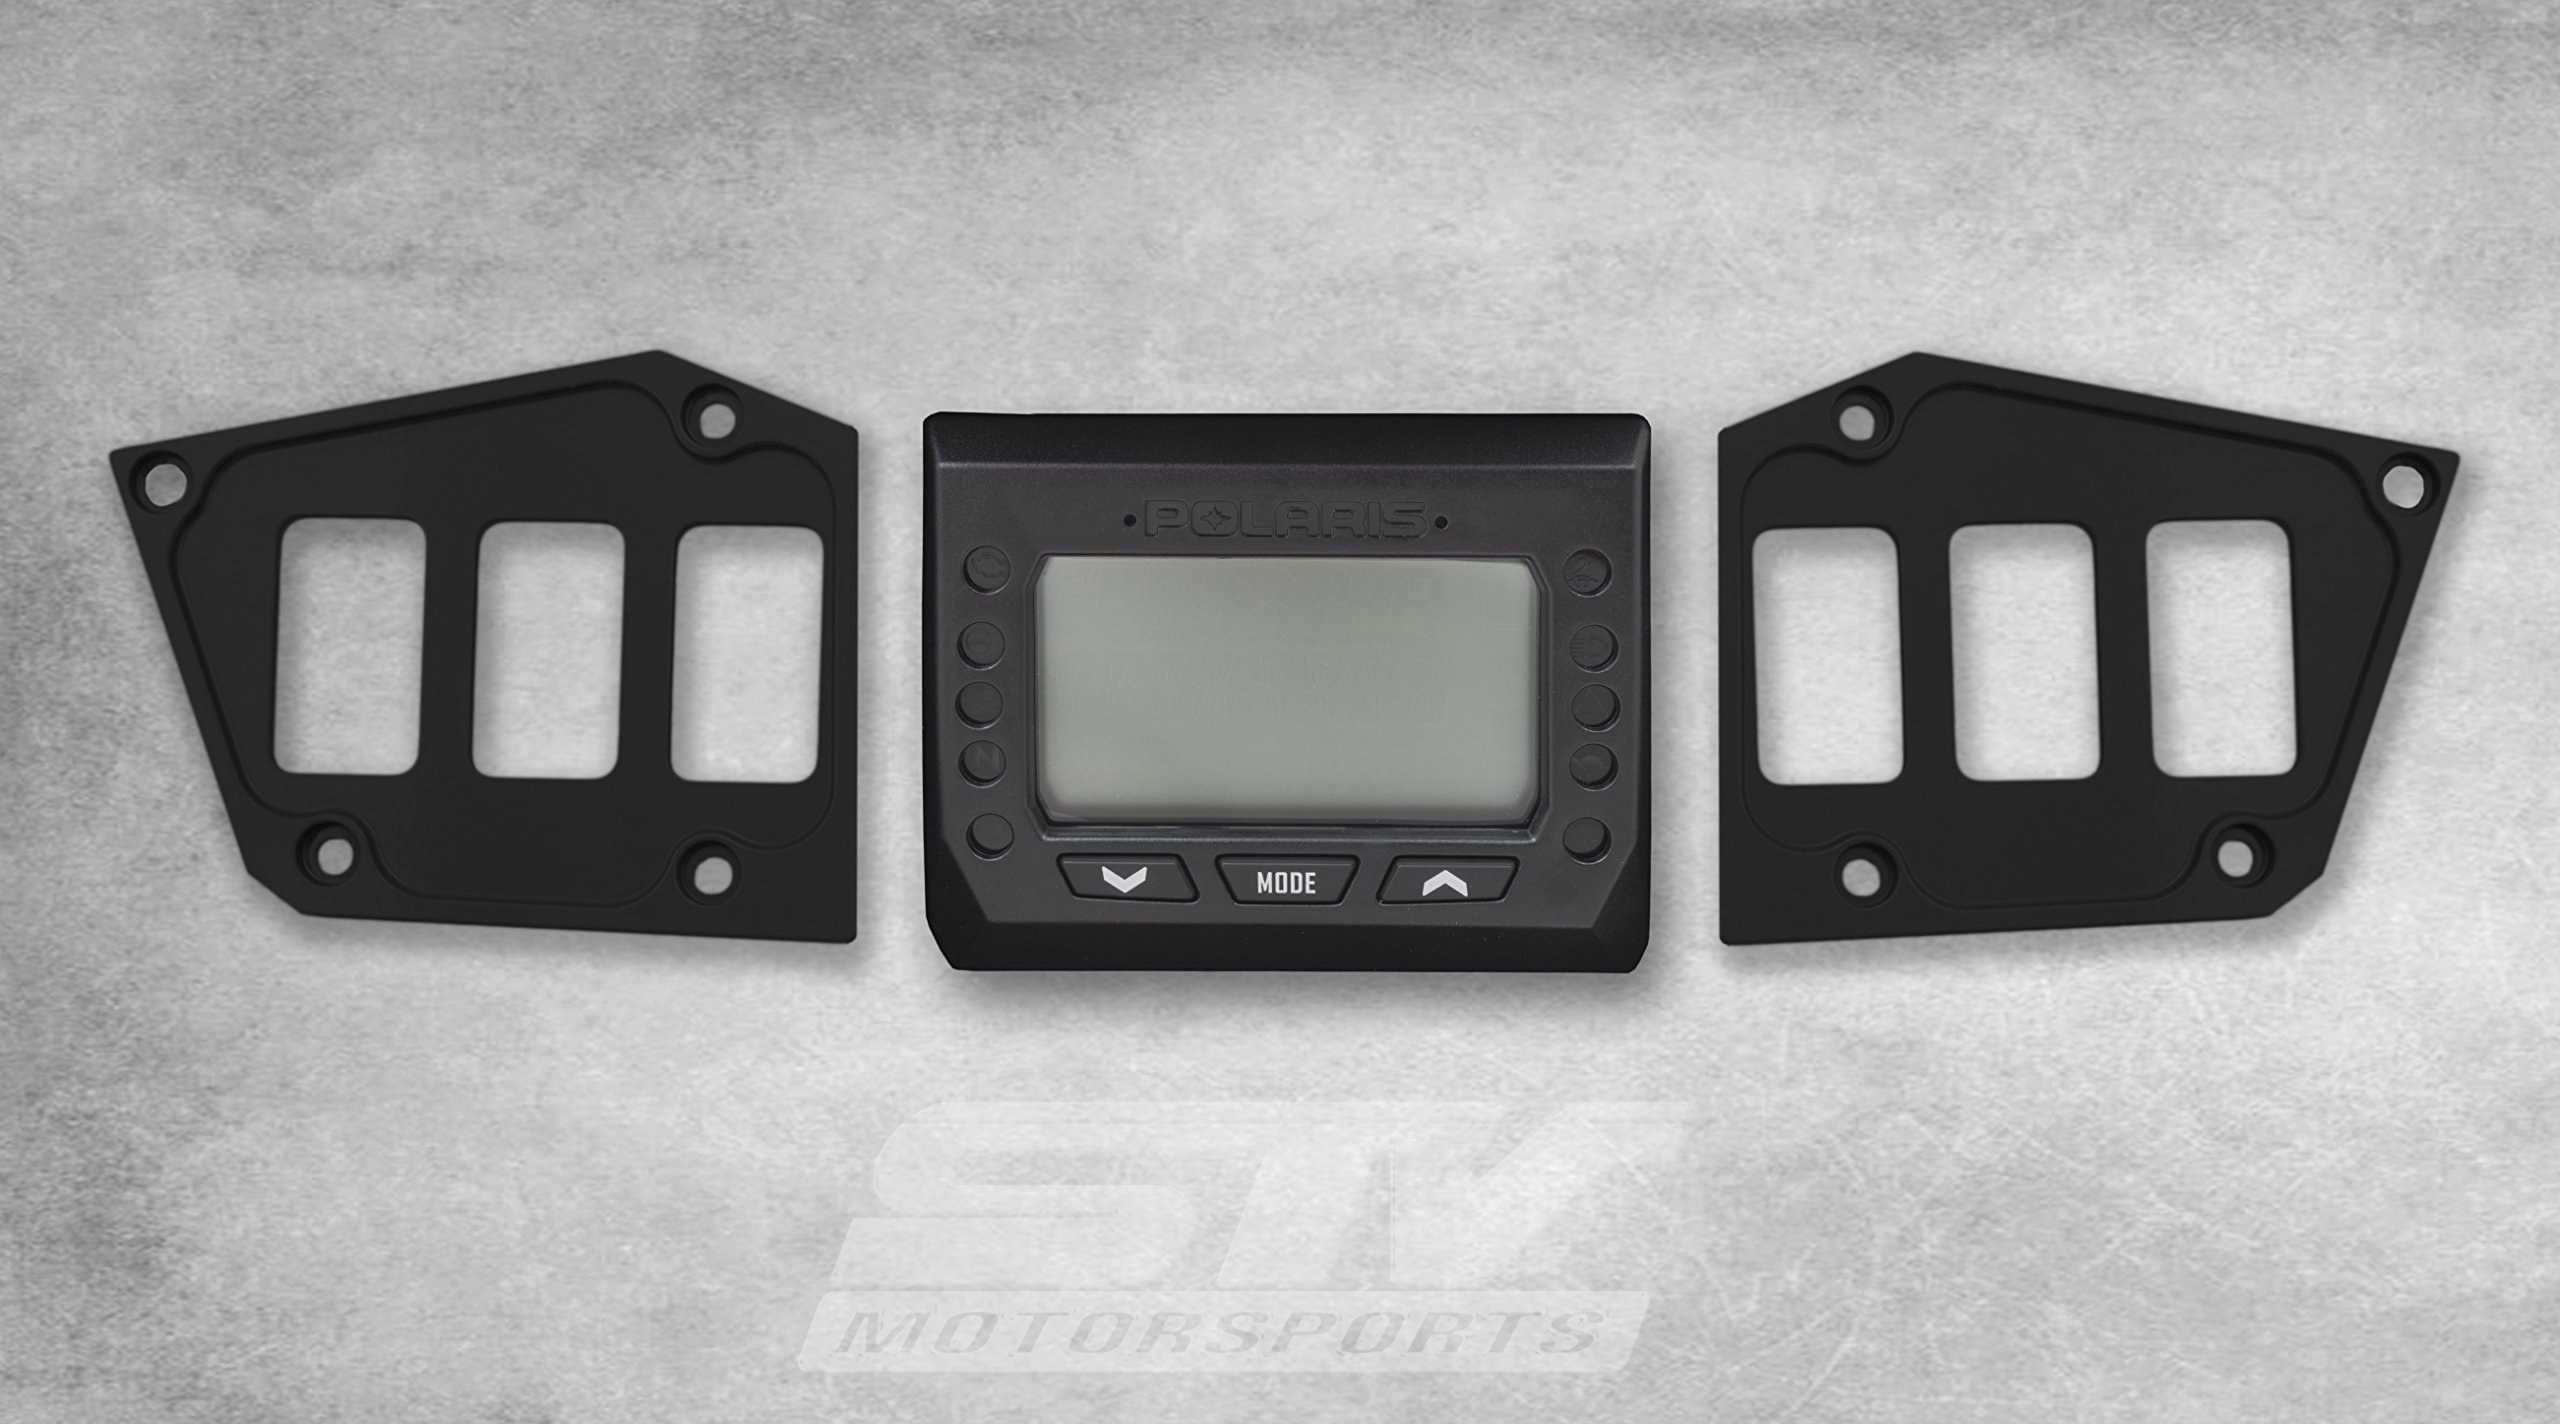 STV Motorsports Custom BLACK Aluminum Dash Panel for POLARIS RZR XP FOX EDITION with GPS DISPLAY – MADE 100% in USA (no switches included)